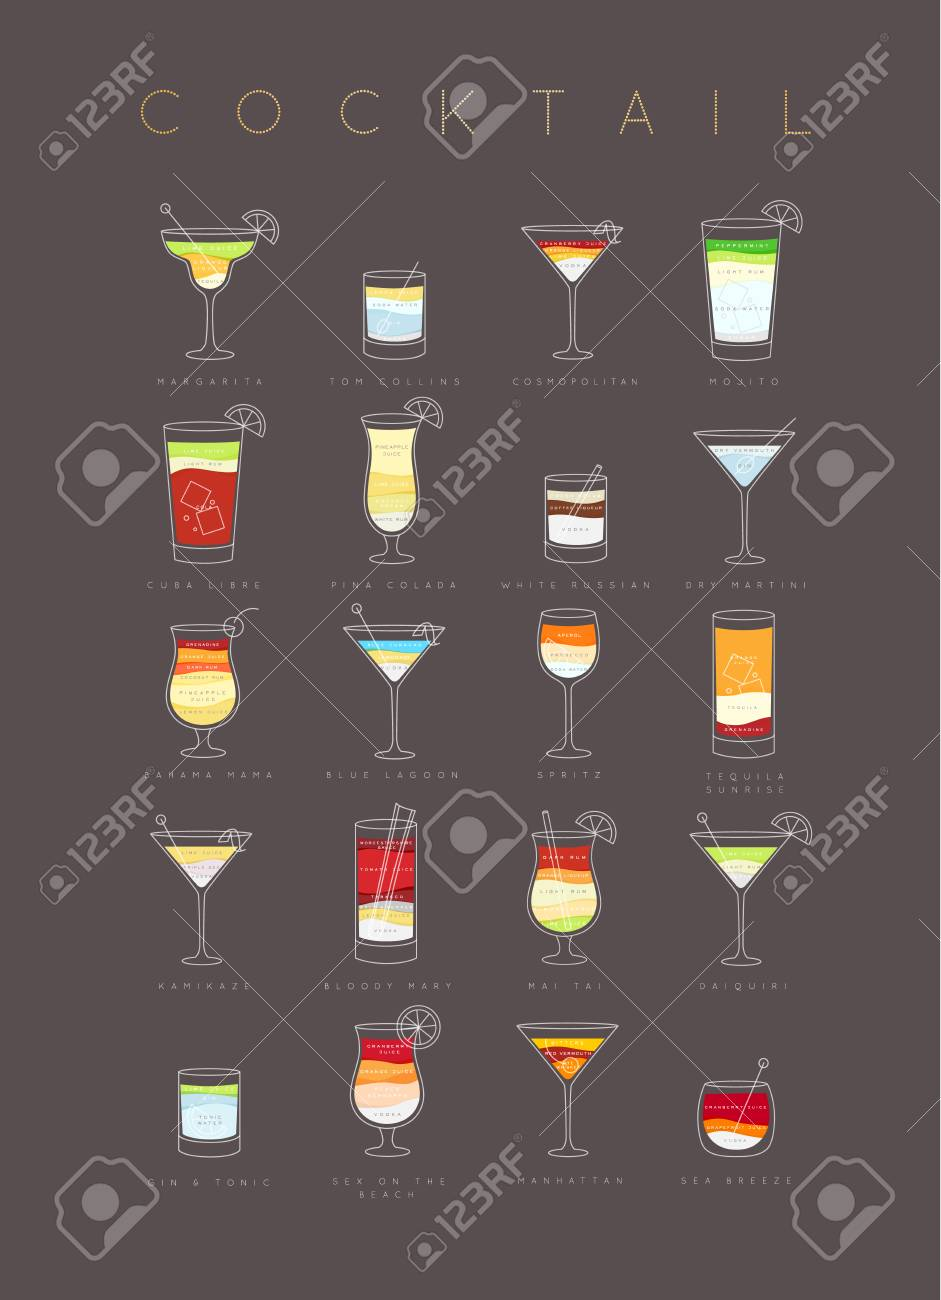 Poster Flat Cocktails Menu With Glass Recipes And Names Of Cocktails Royalty Free Cliparts Vectors And Stock Illustration Image 96393728